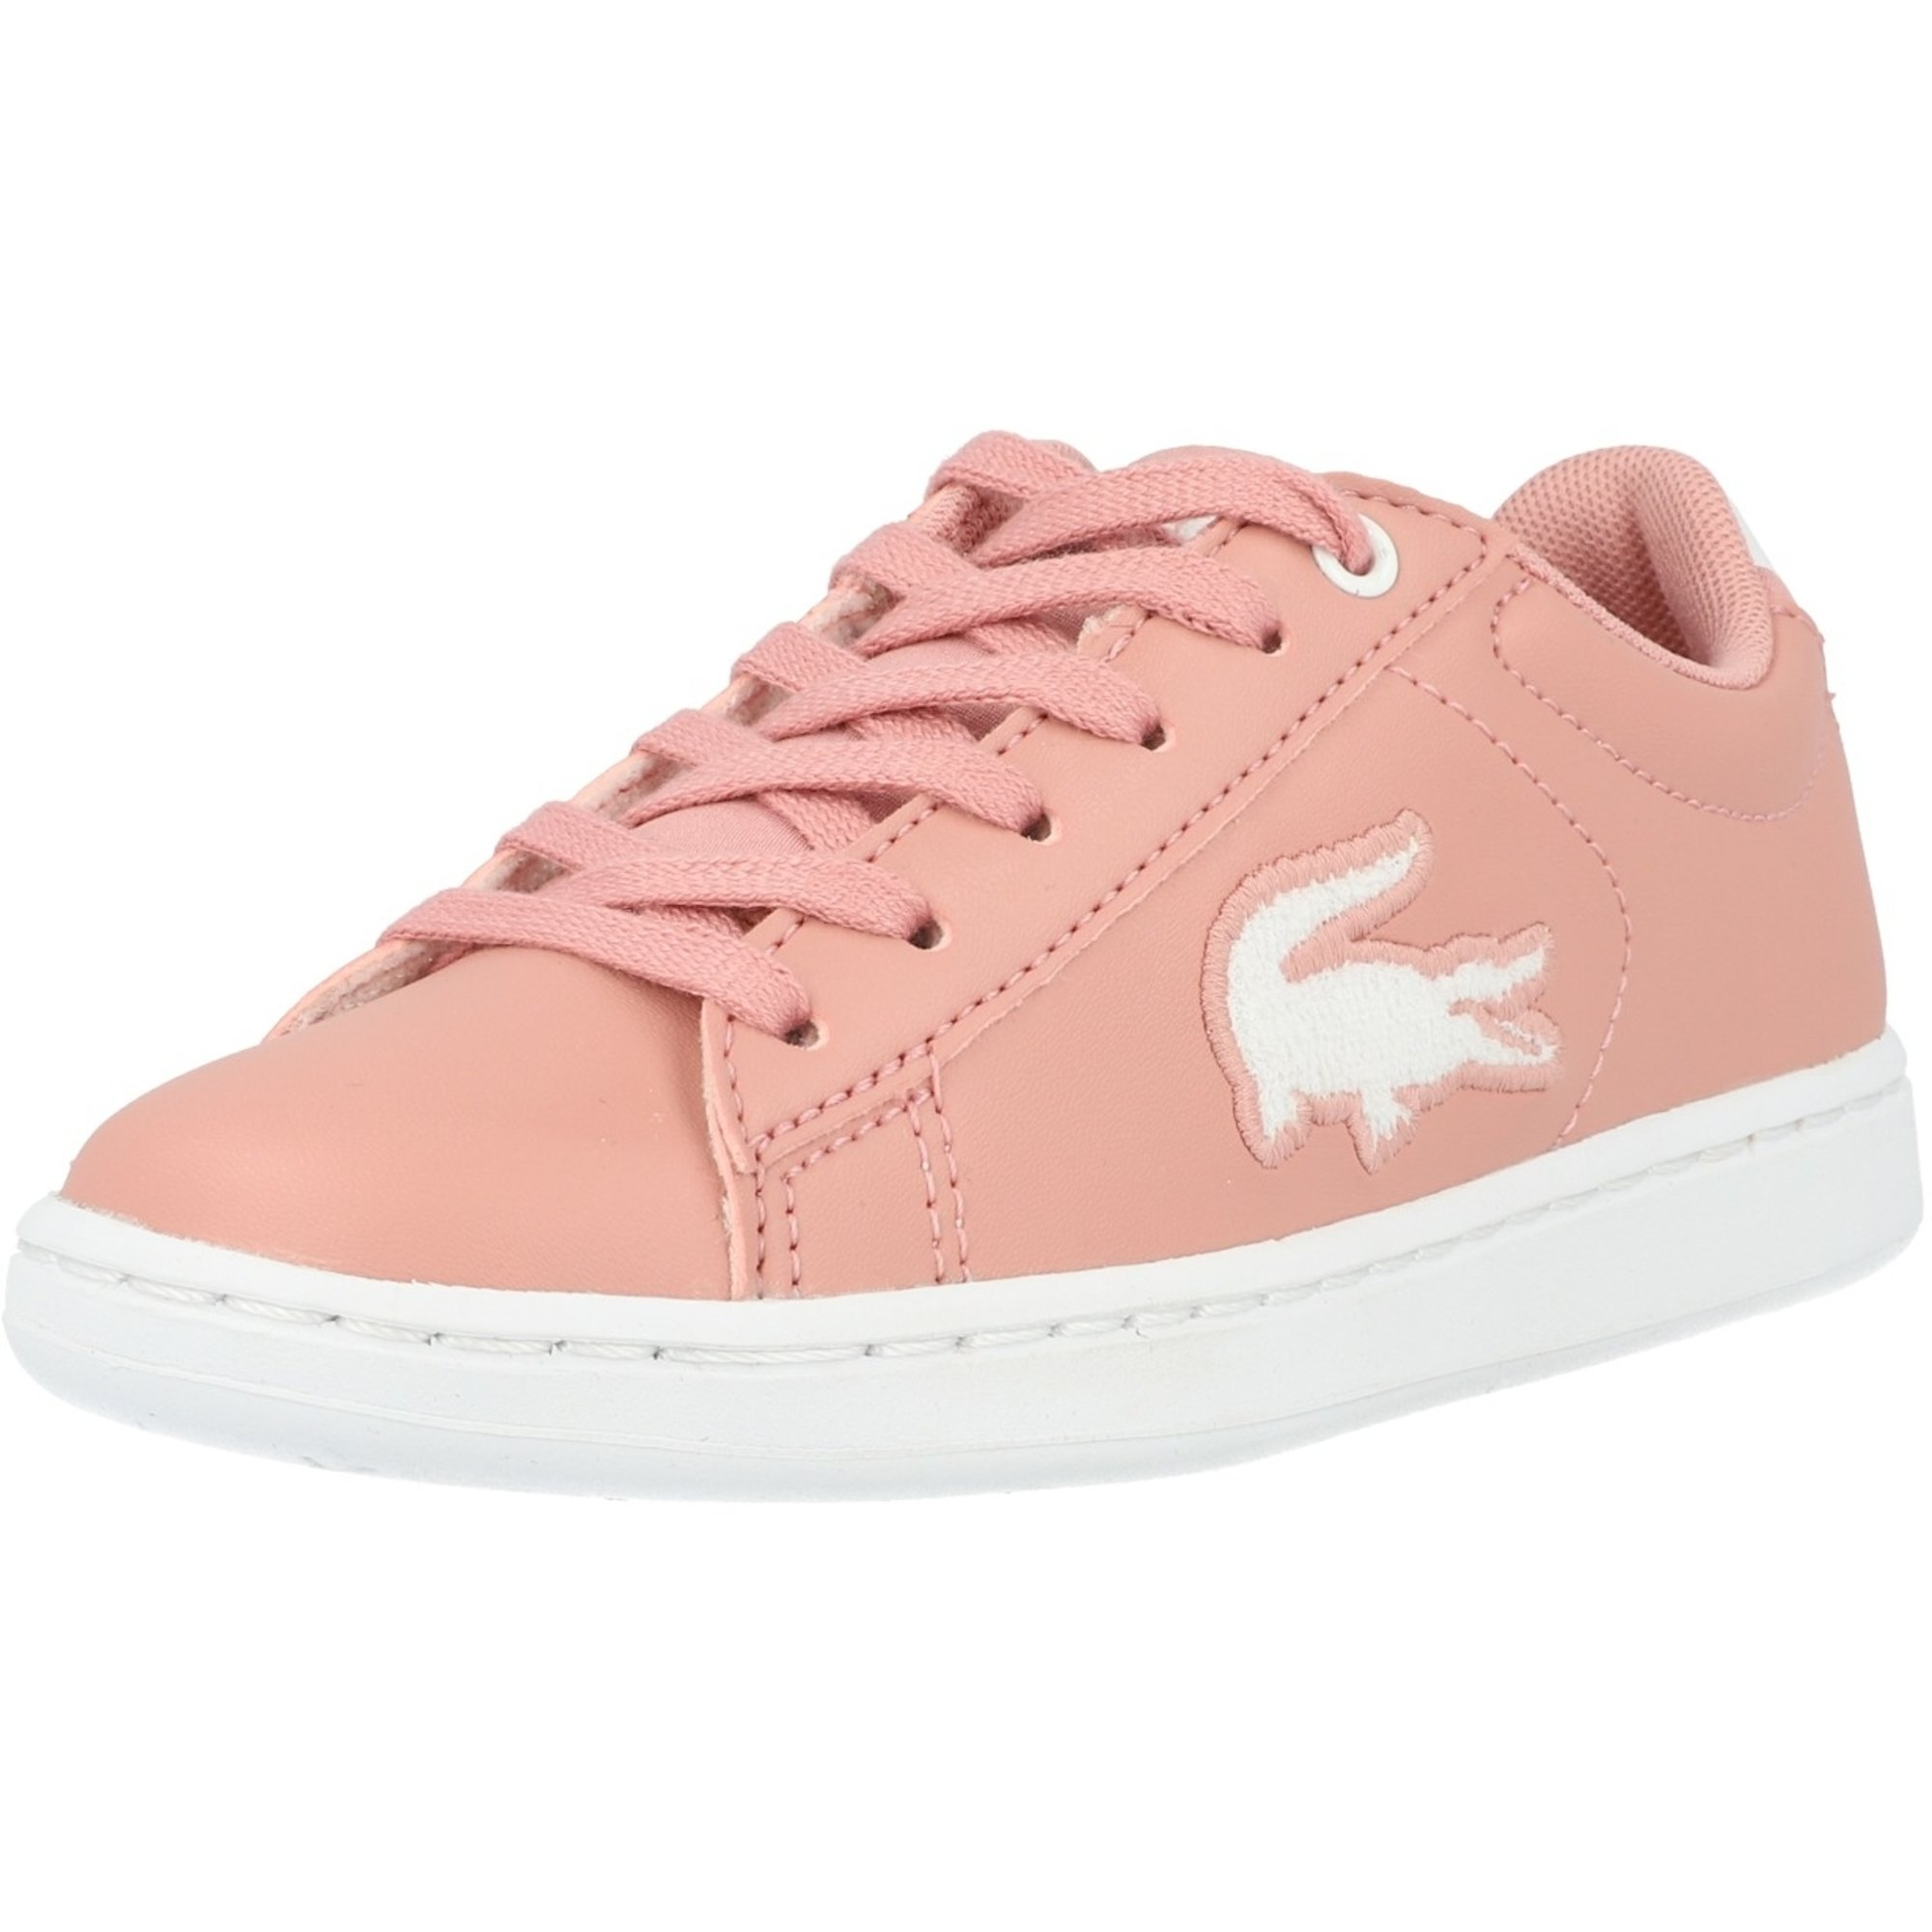 Lacoste Carnaby Evo 418 3 Pink/White Synthetic